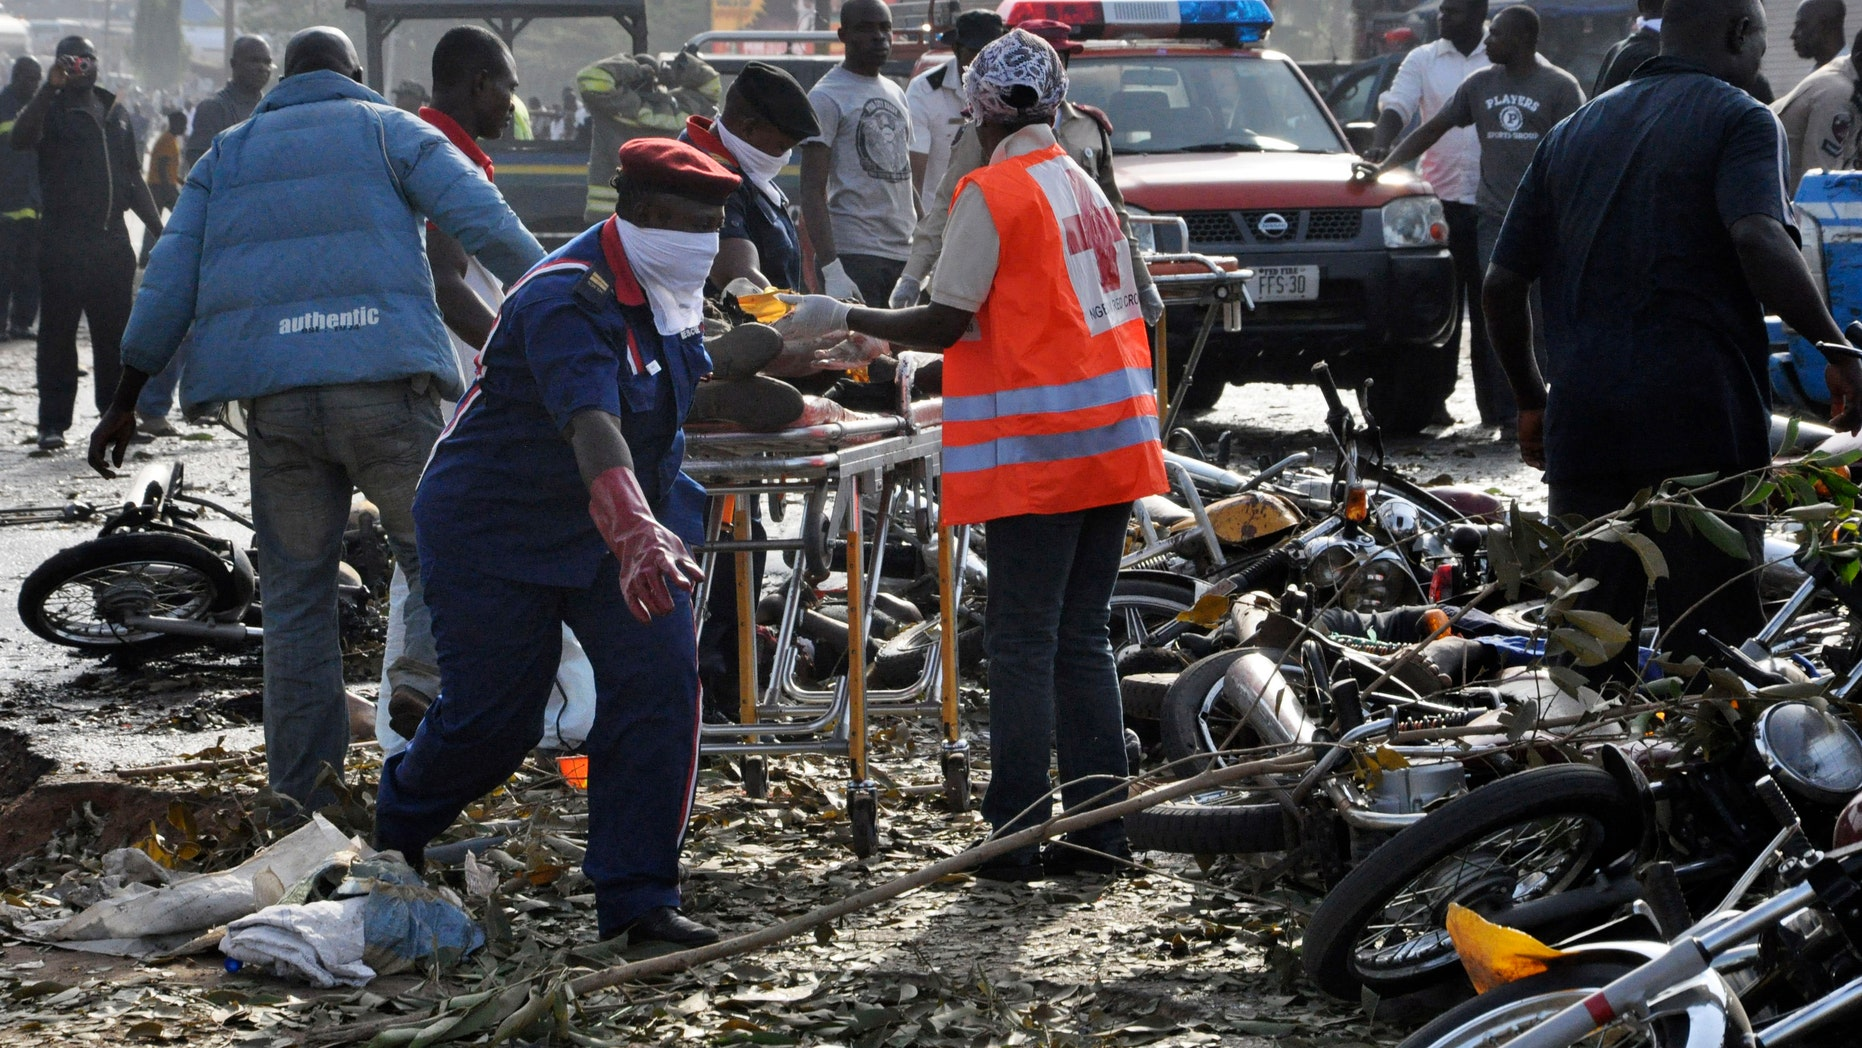 April 14, 2014: Rescue workers work to recover victims at the site of a blast at the Nyanya Motor Park, about 10 miles from the center of Abuja, Nigeria. An explosion blasted through a busy commuter bus station on the outskirts of Abuja as hundreds of people were traveling to work.